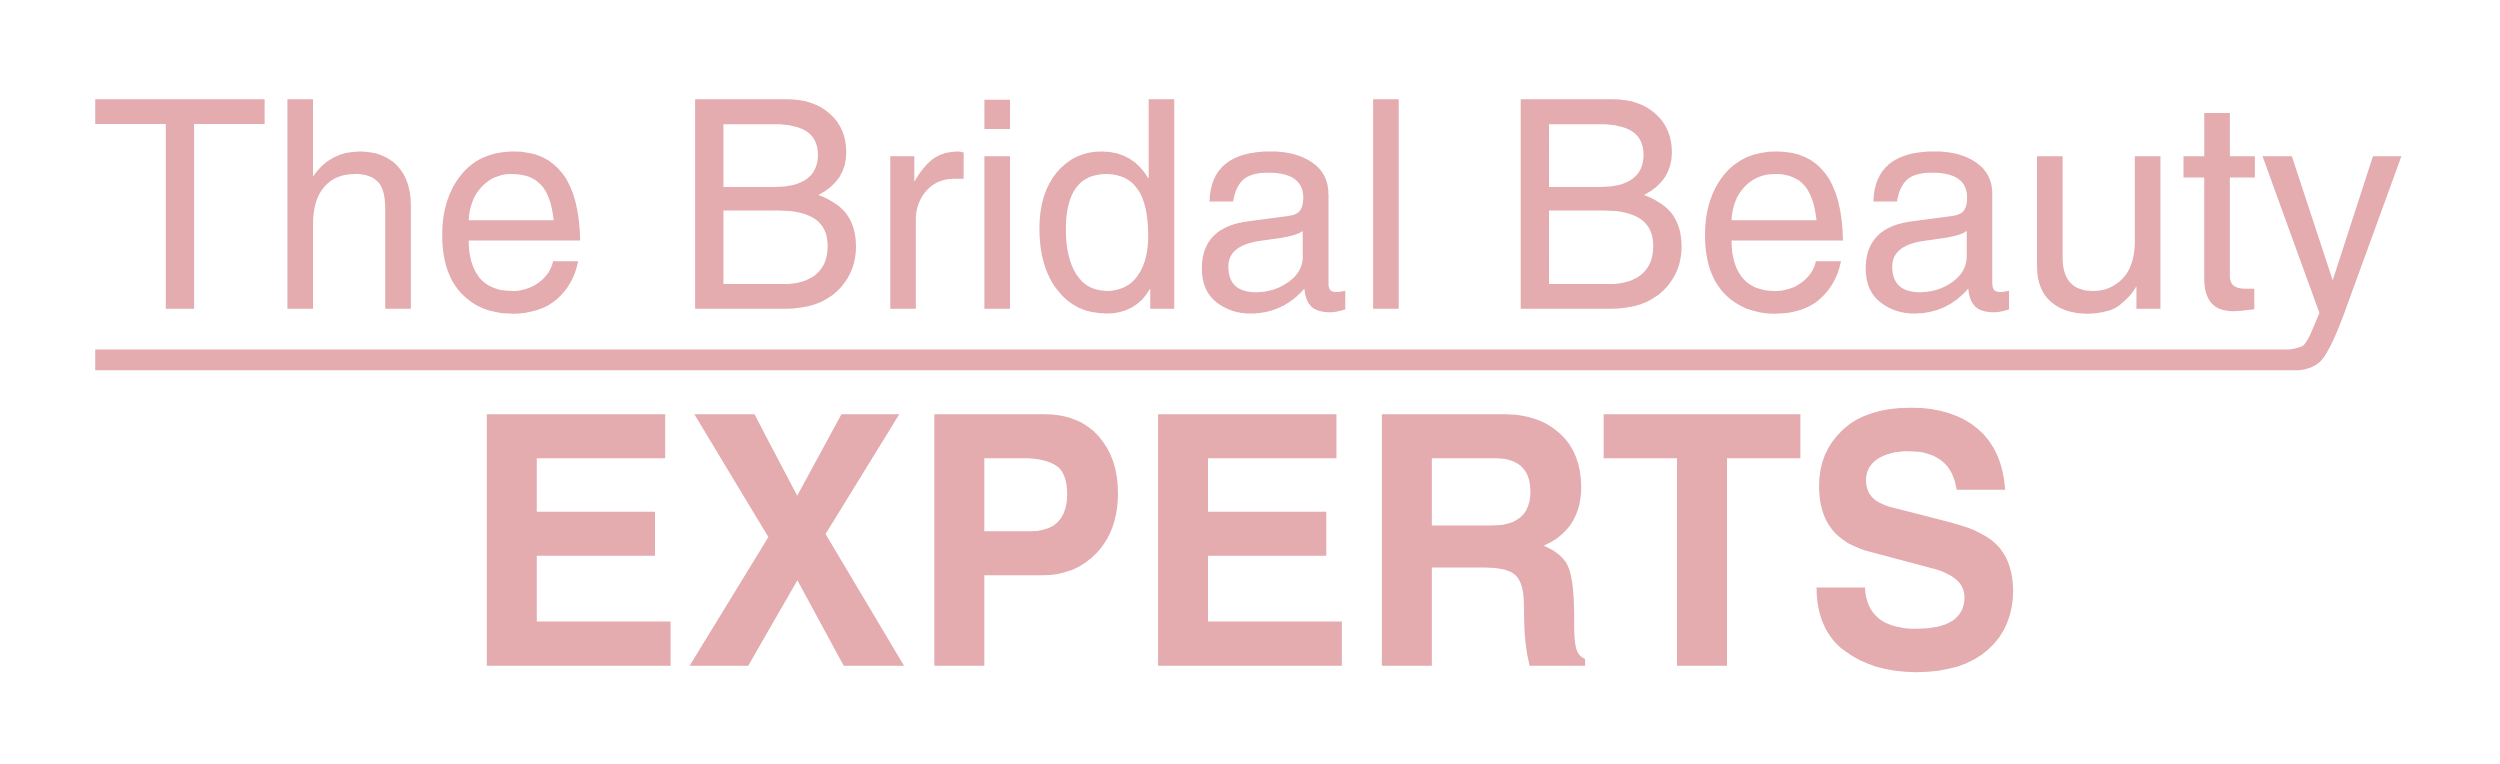 The Bridal Beauty Experts